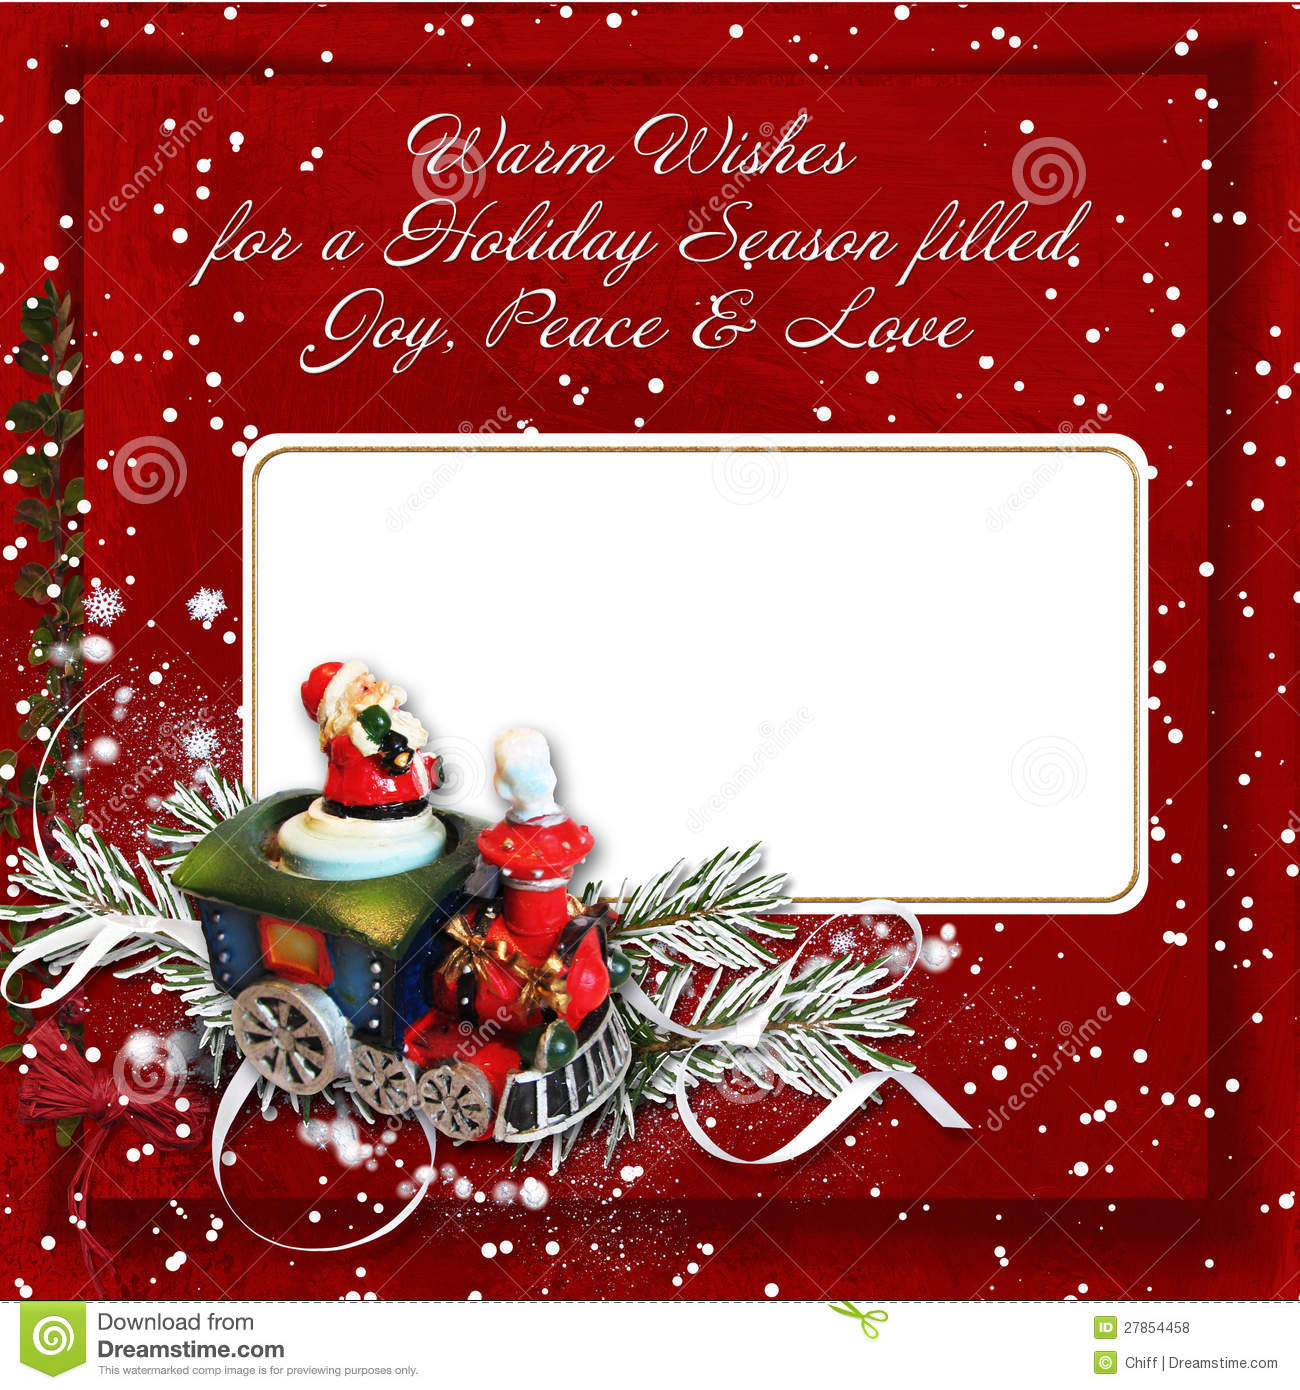 Christmas Greeting Card With Warm Wishes Royalty Free